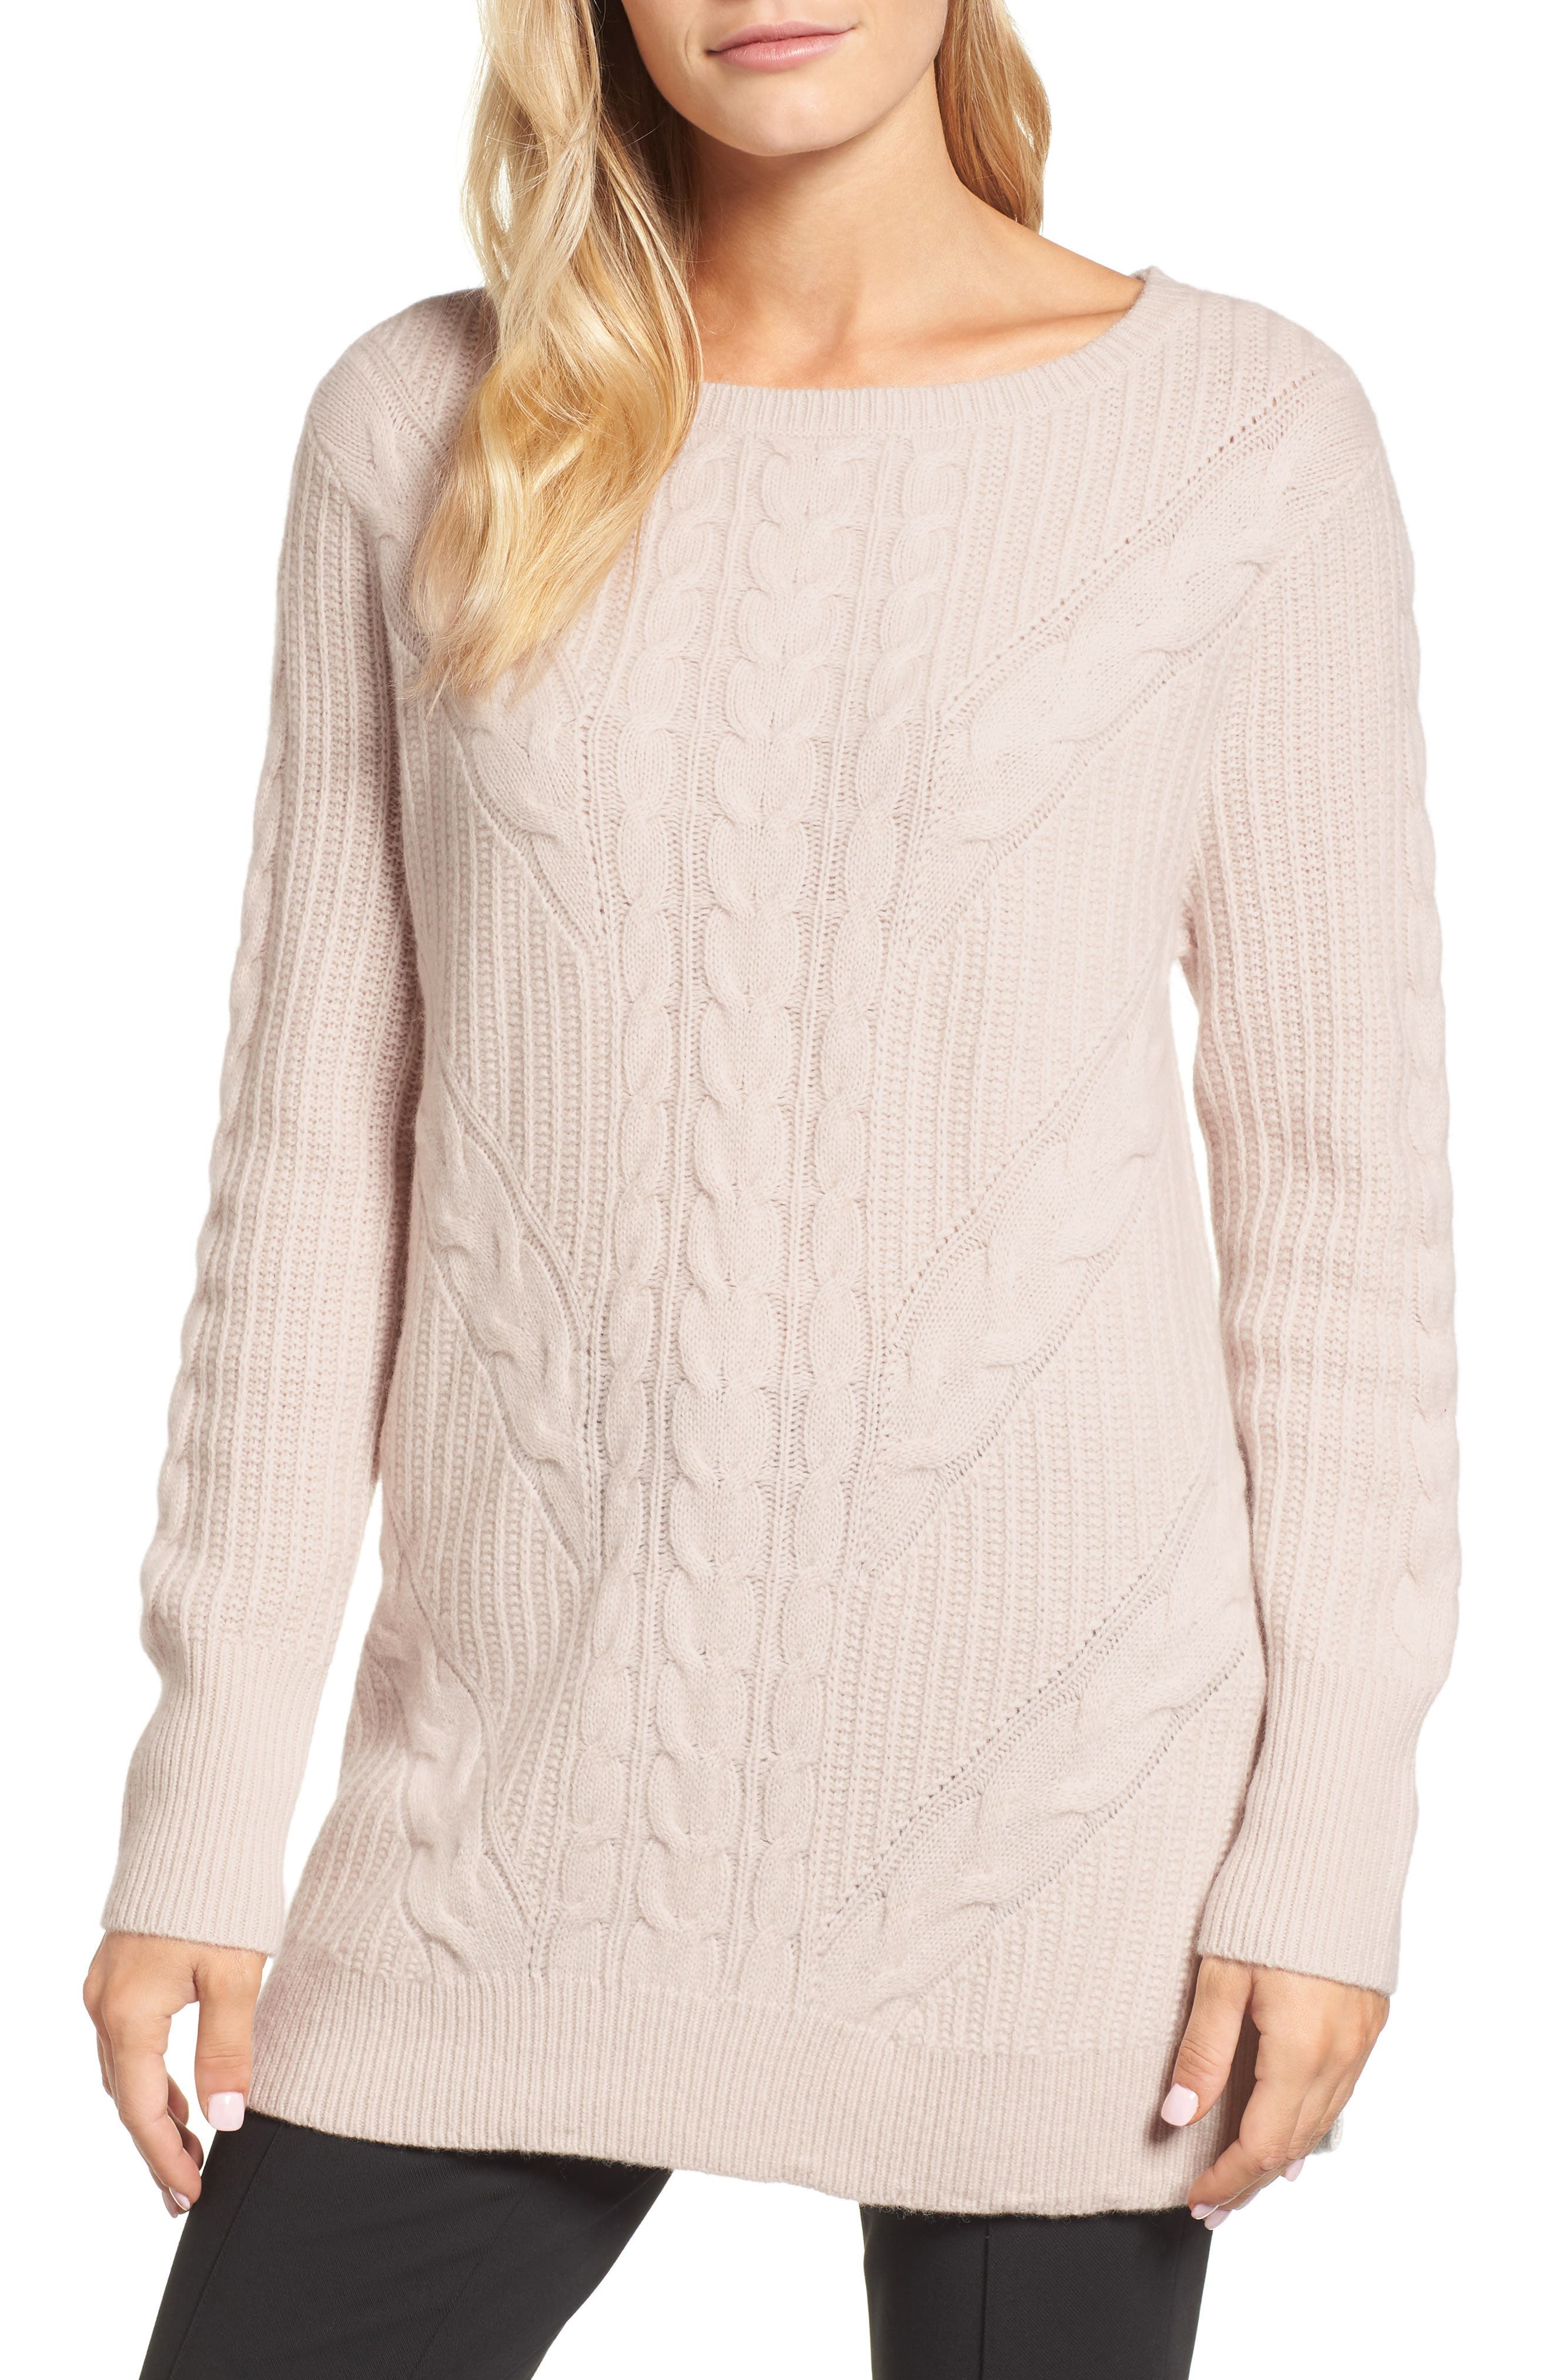 Emerson Rose Cashmere Cable Tunic Sweater